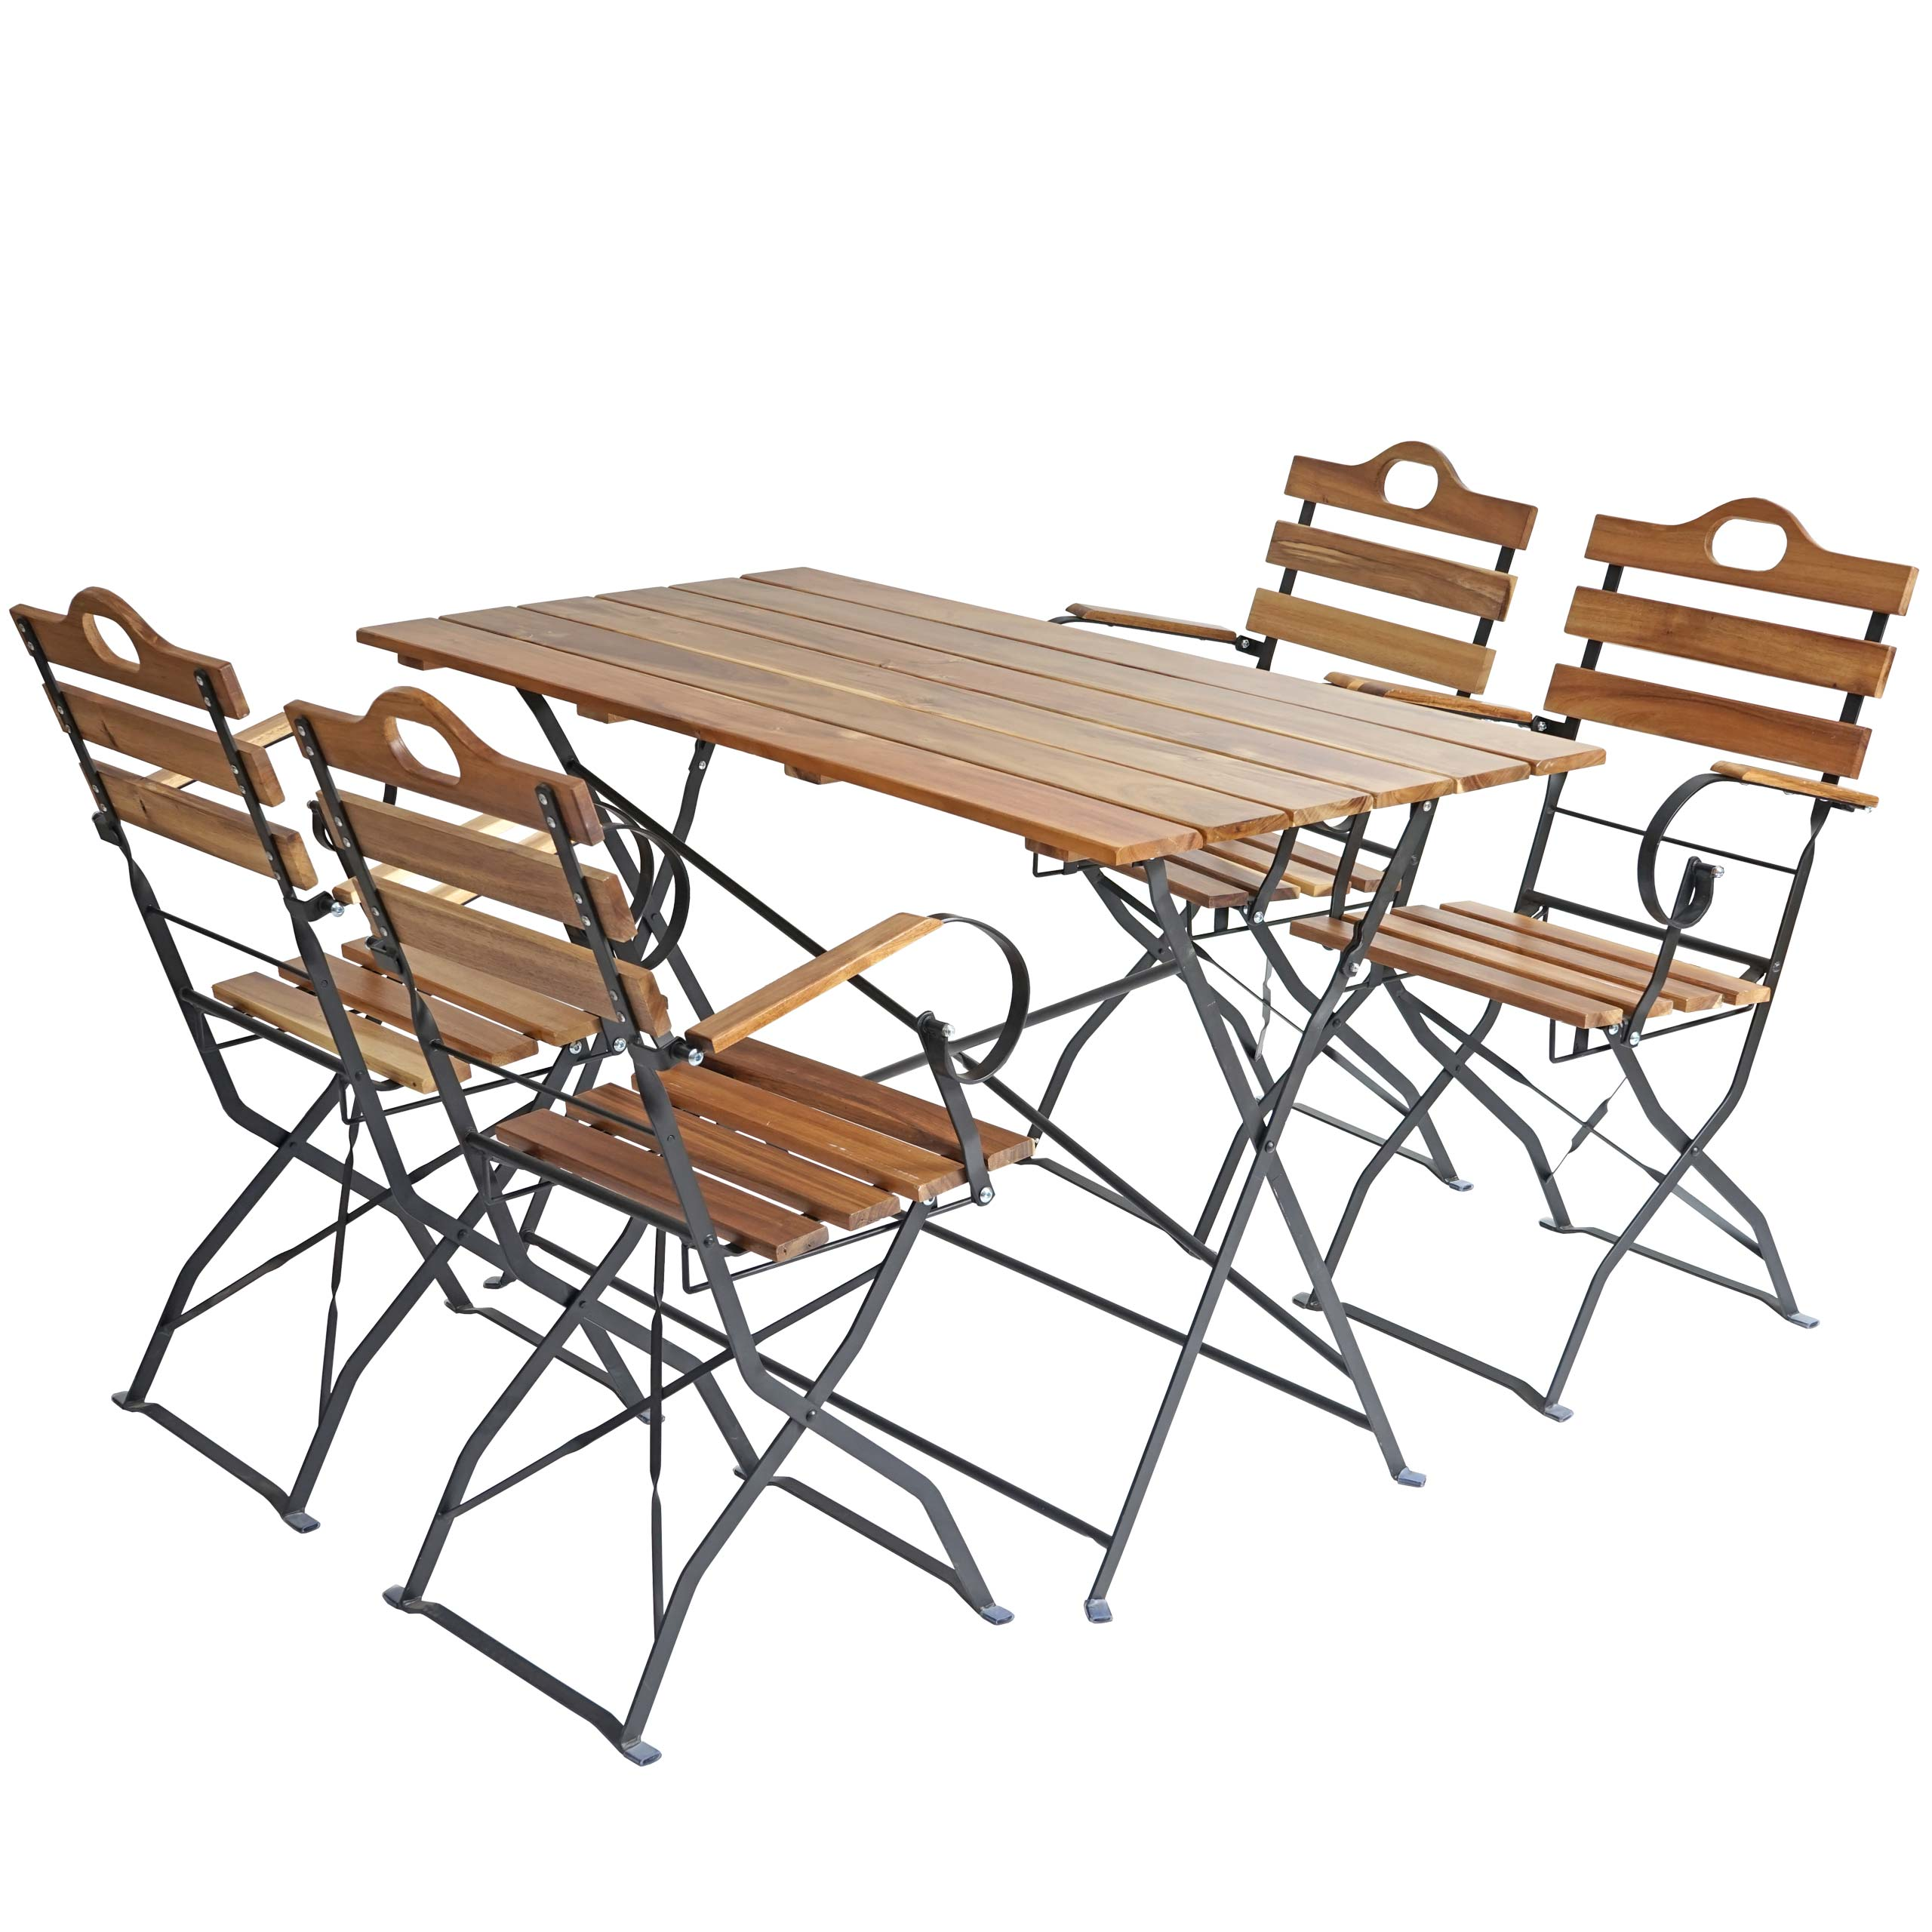 biergarten garnitur wien bistro set garten set klappbar akazie ge lt natur ebay. Black Bedroom Furniture Sets. Home Design Ideas